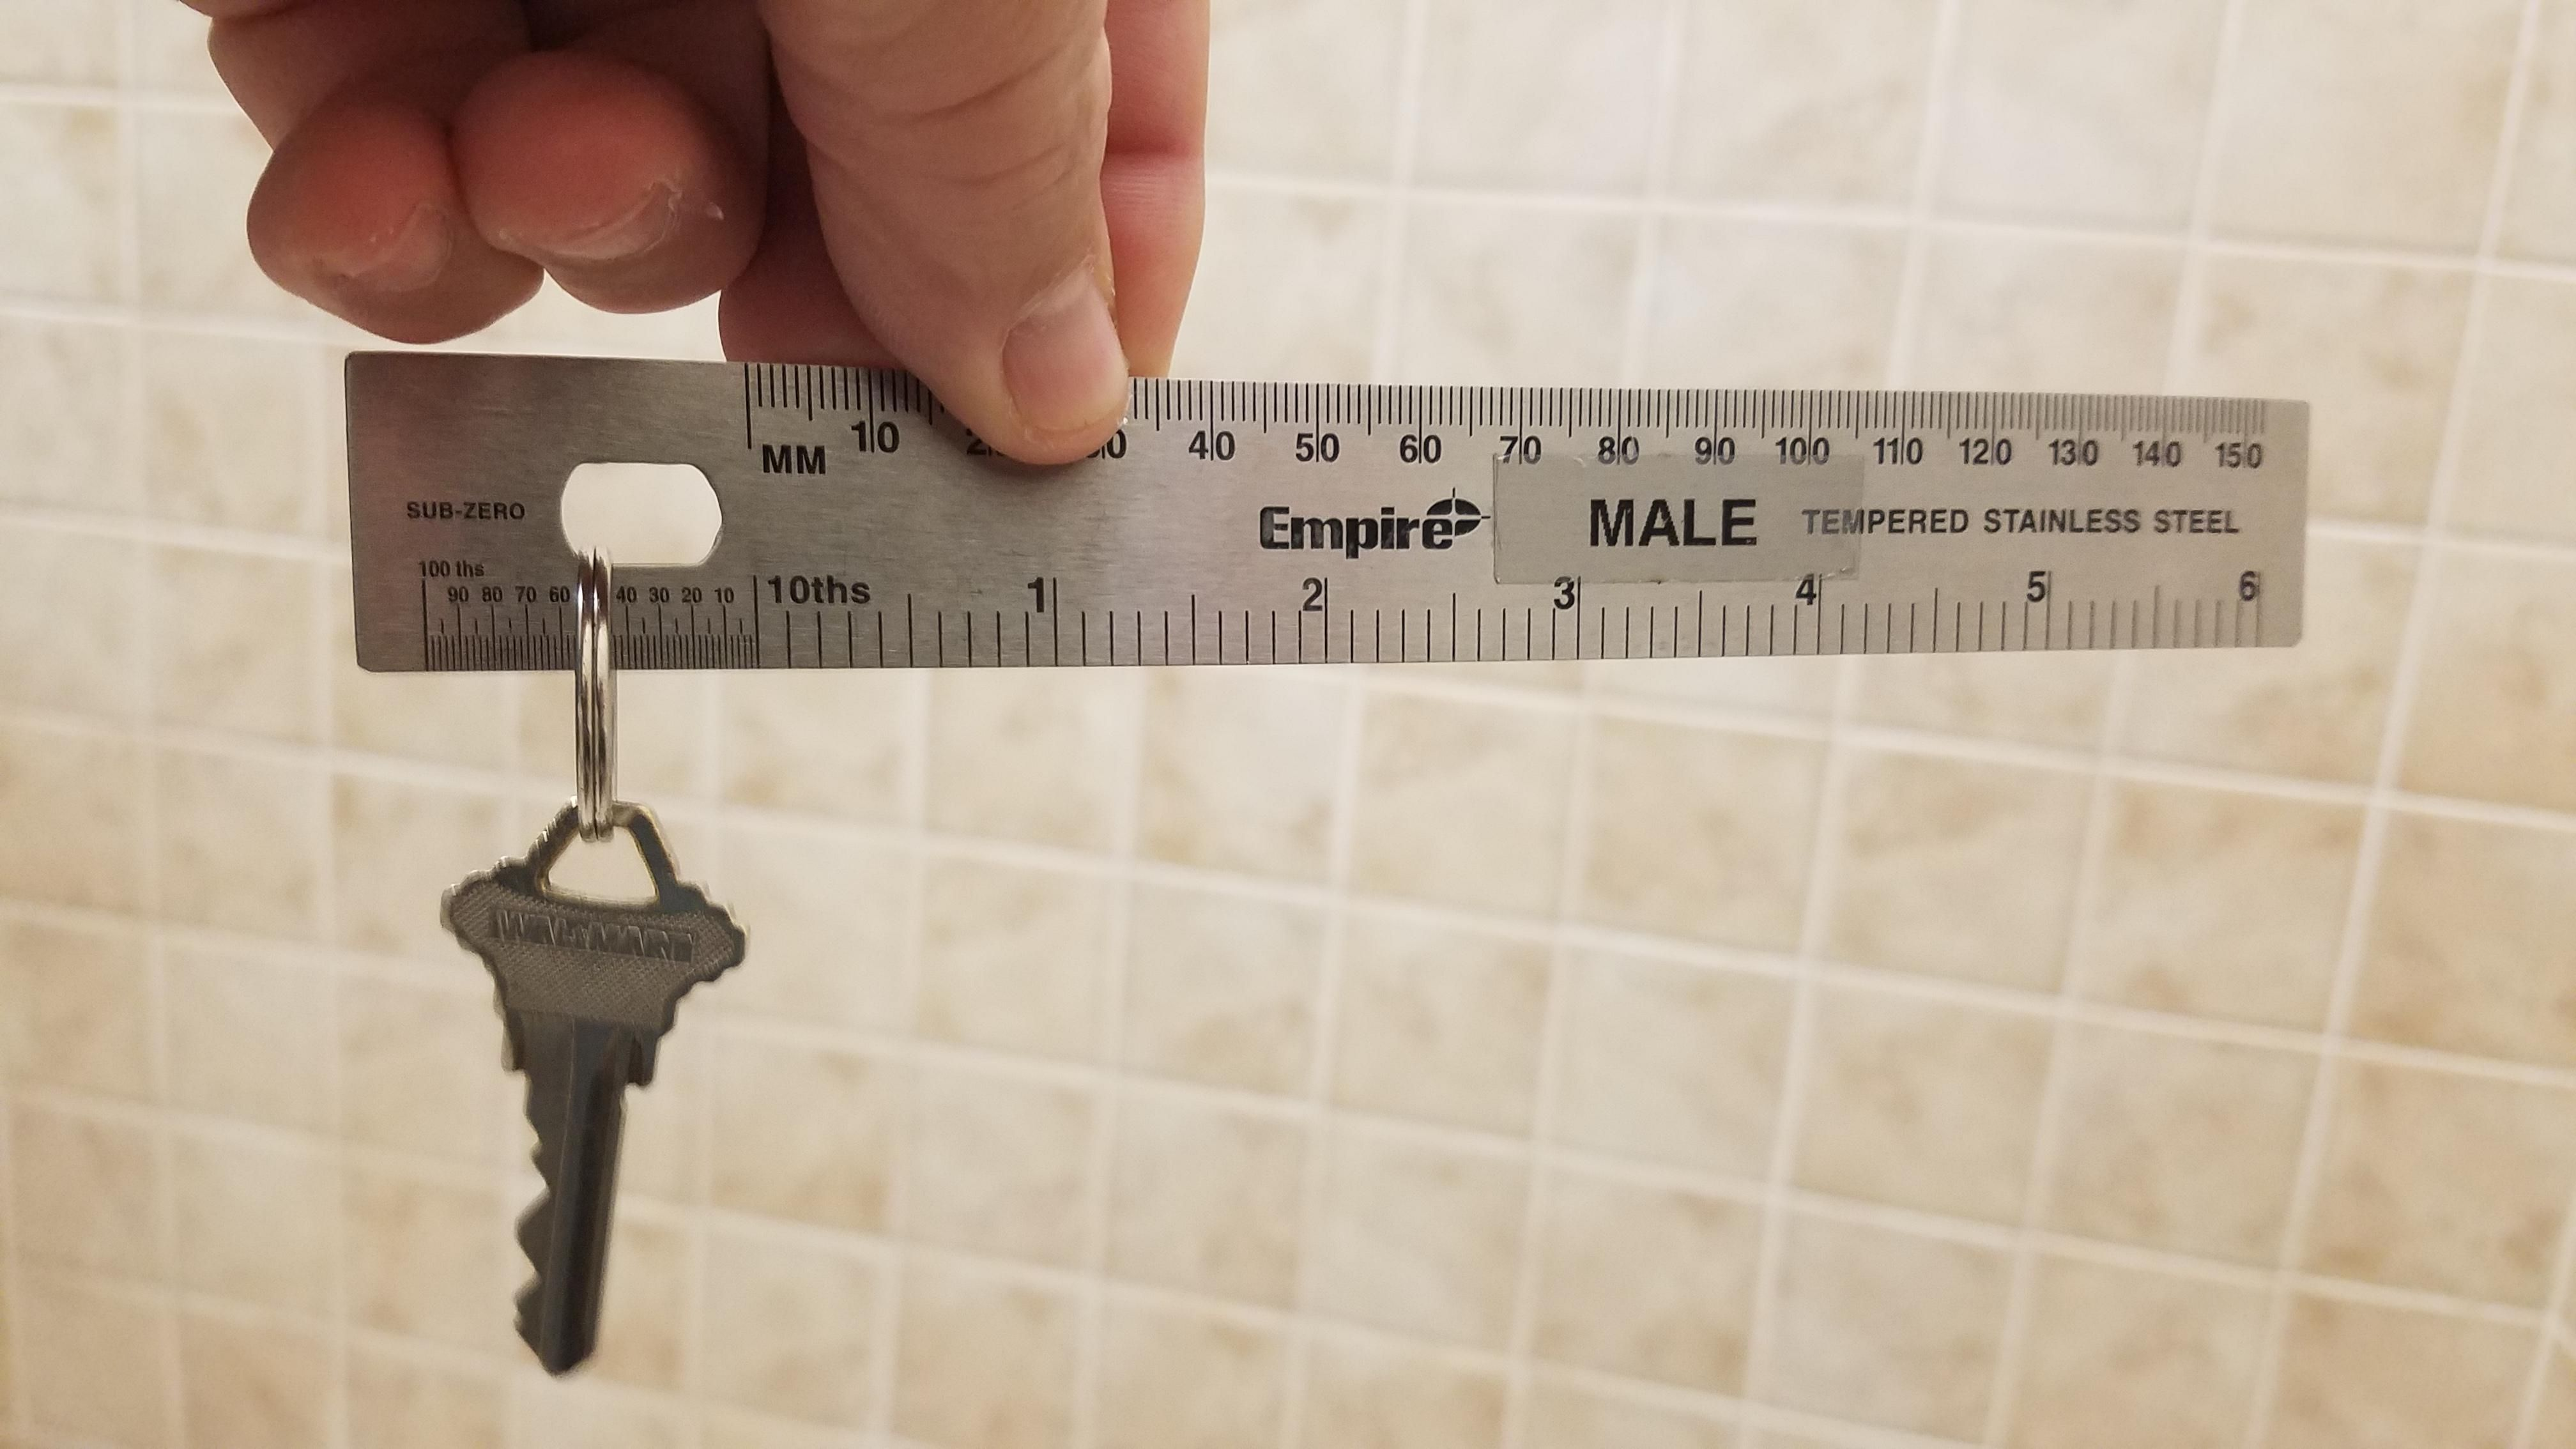 The key to the Men's Bathroom at my Dentists Office